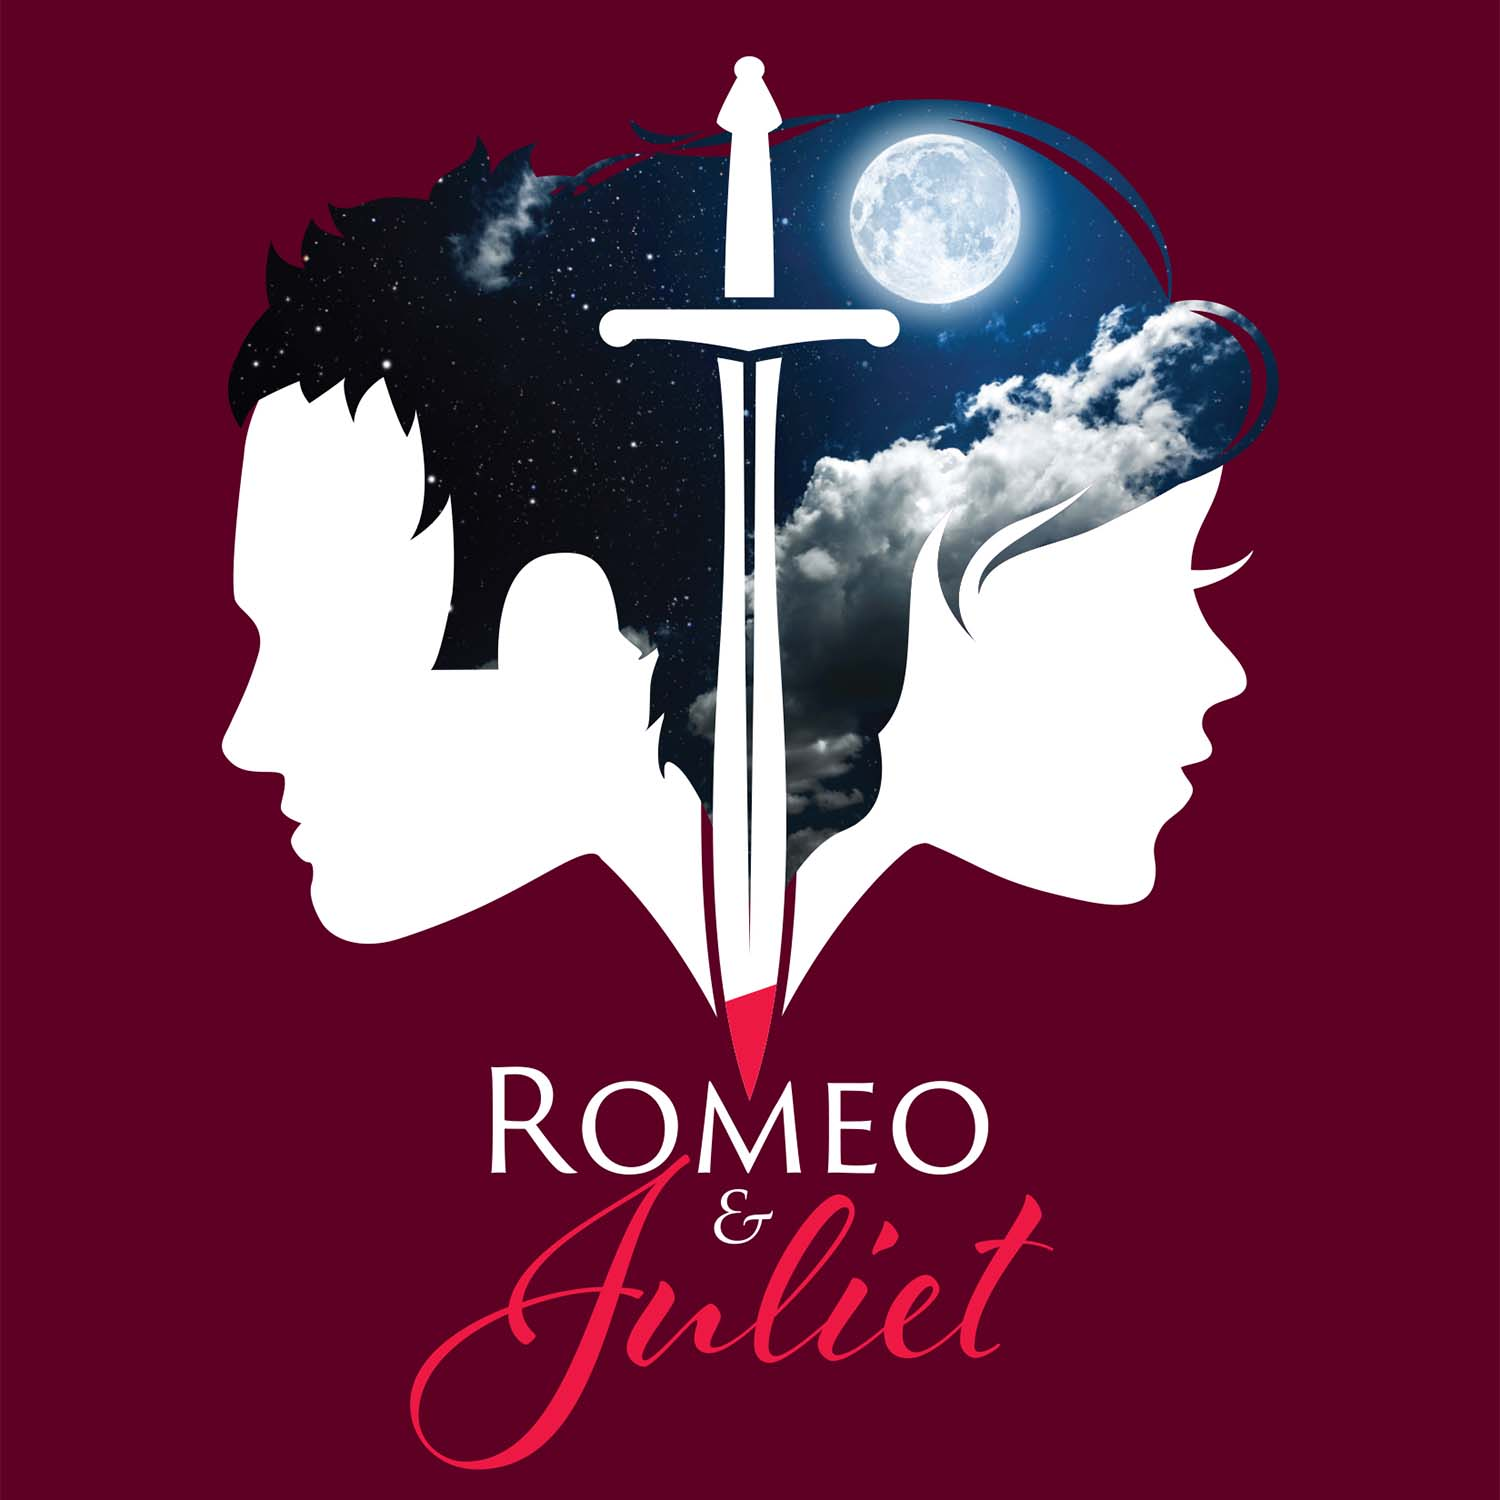 Romeo & Juliet | Friday, March 23, 2018 at 7:30 P.M. and Sunday, March 25, 2018 at 2:30 P.M. | Wright Center, Samford University